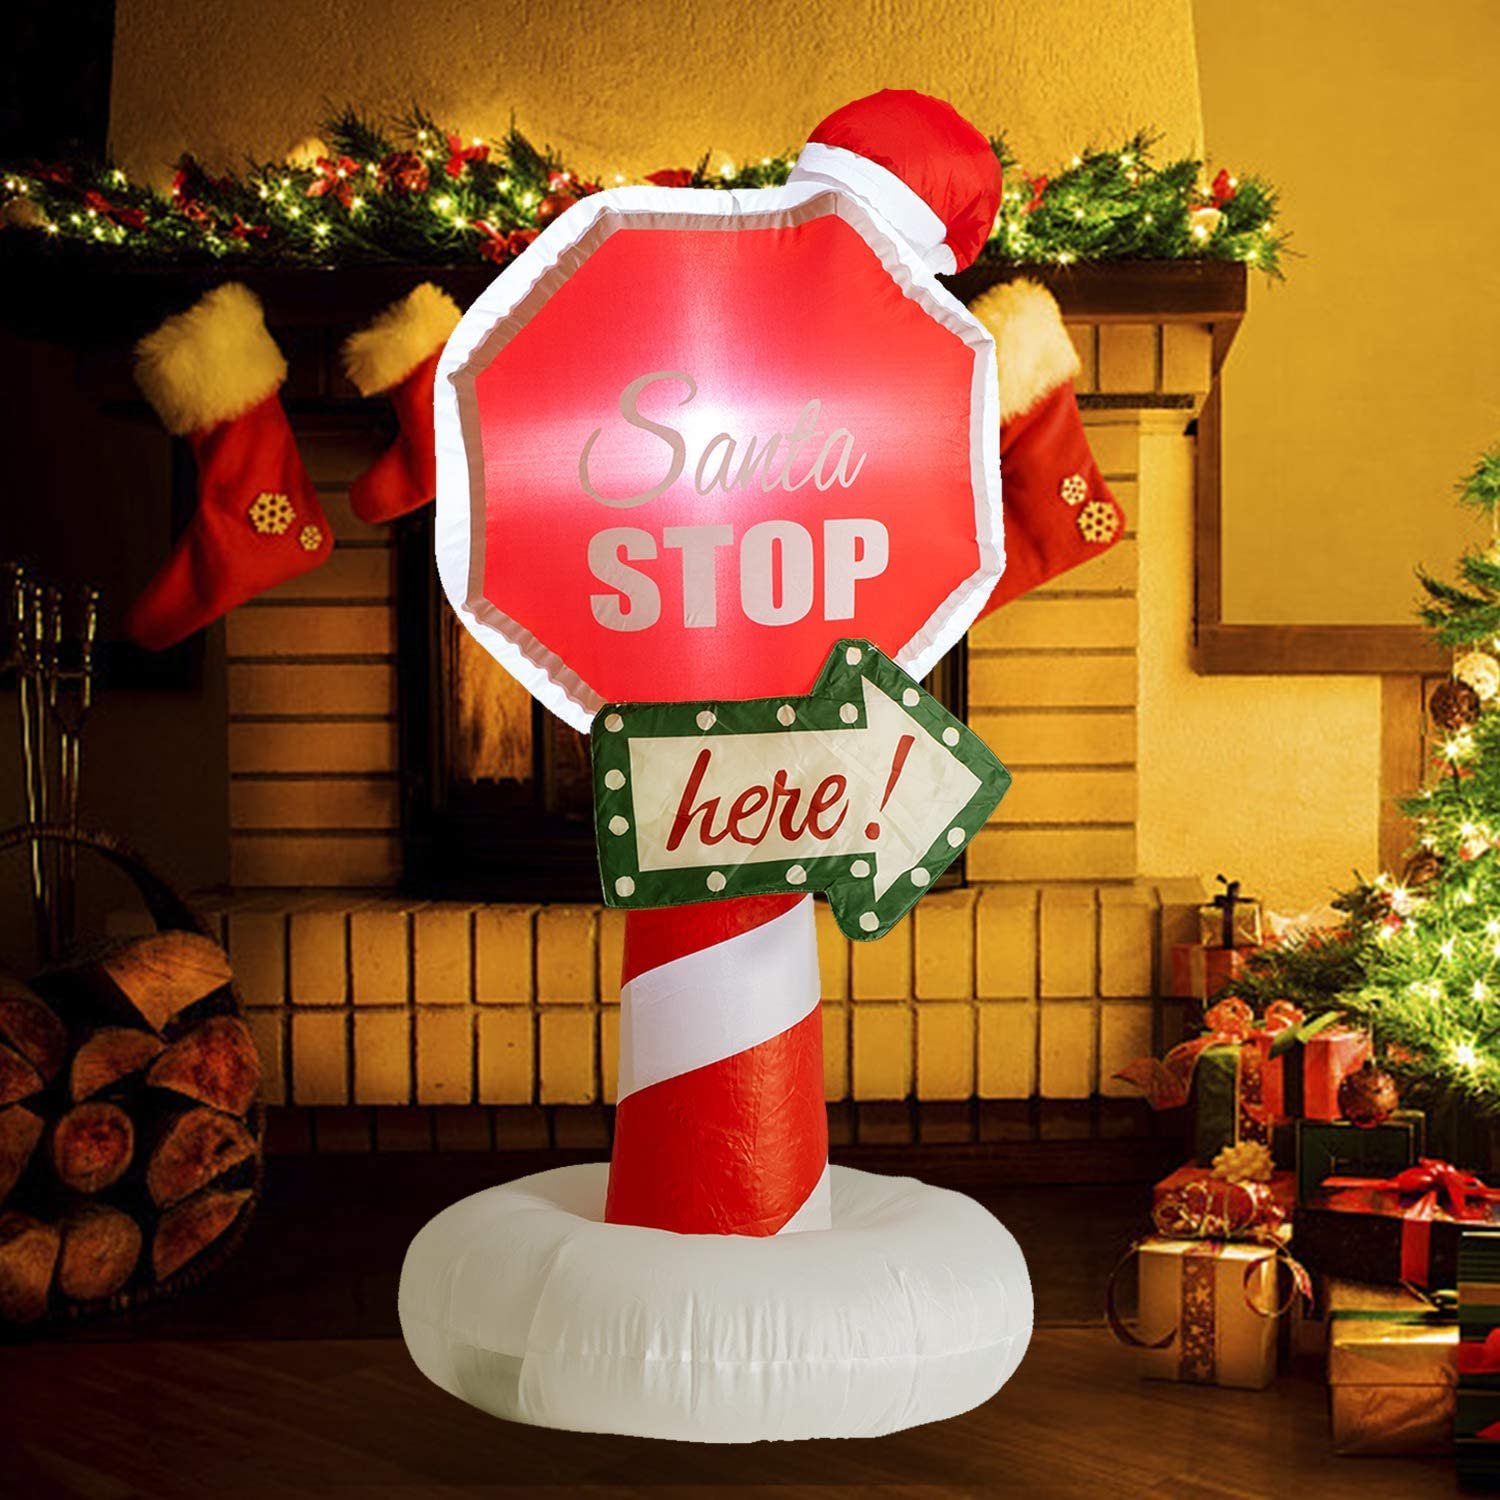 Bestmart Beauty products Christmas Inflatable Decoration 4 Special price for a limited time Stop Santa with FT Bu